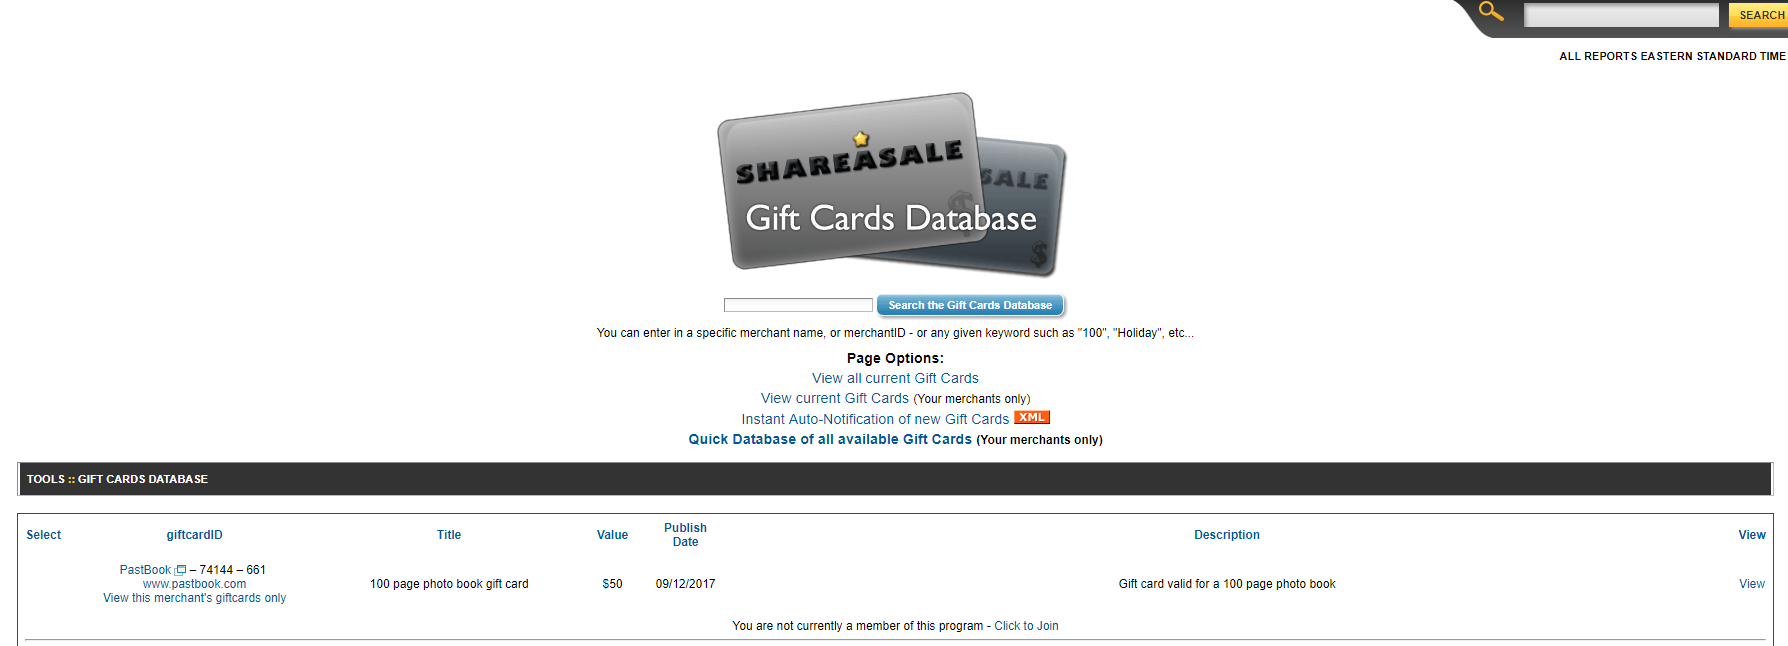 Shareasale's Gift Card Database